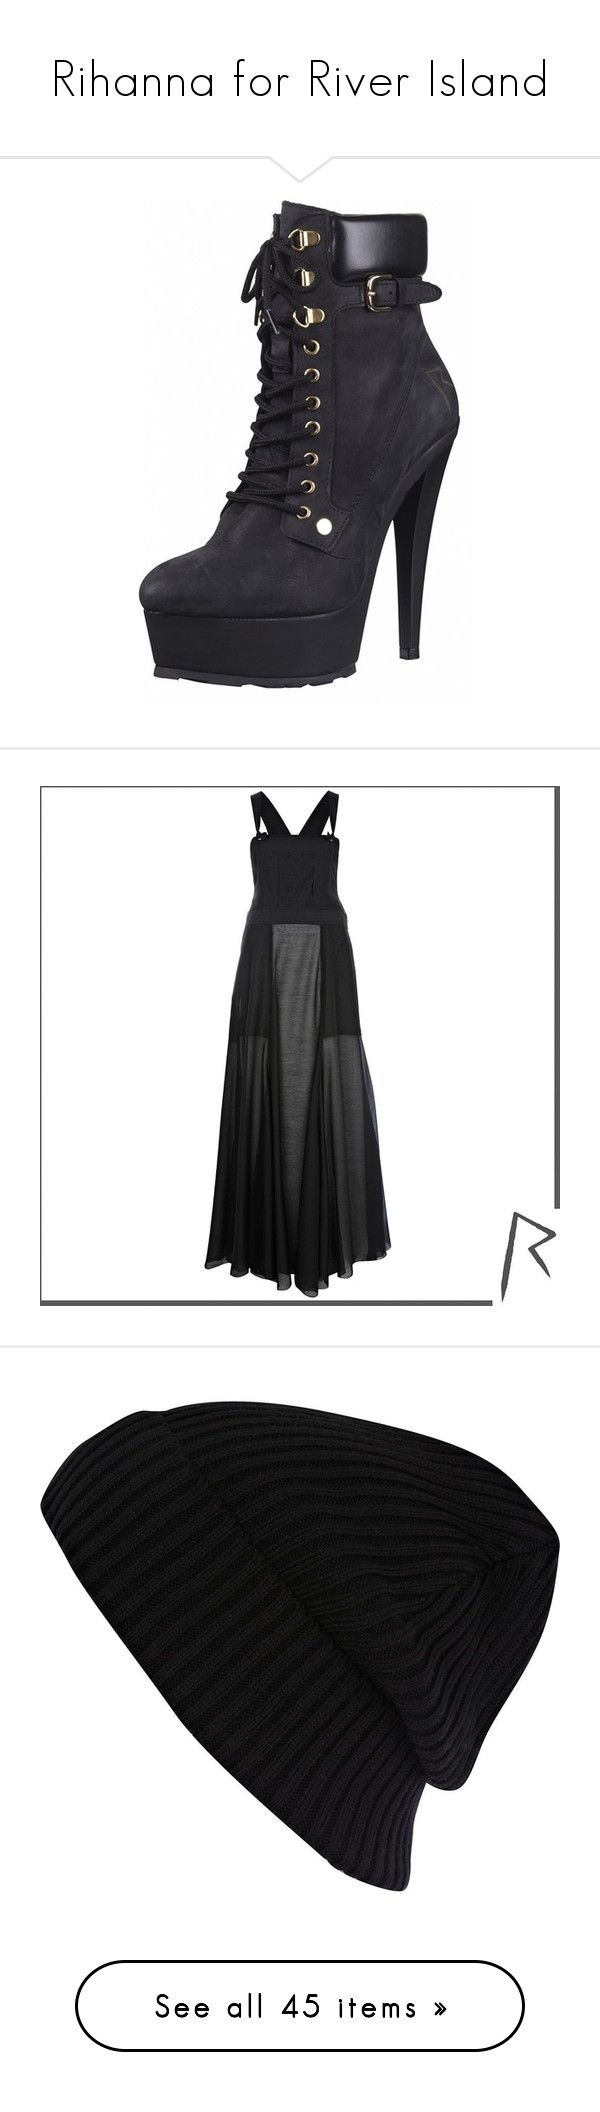 """Rihanna for River Island"" by missmichelera ❤ liked on Polyvore featuring shoes, boots, heels, sapatos, dresses, river island, sale, grunge dress, river island dresses and transparent maxi dress"